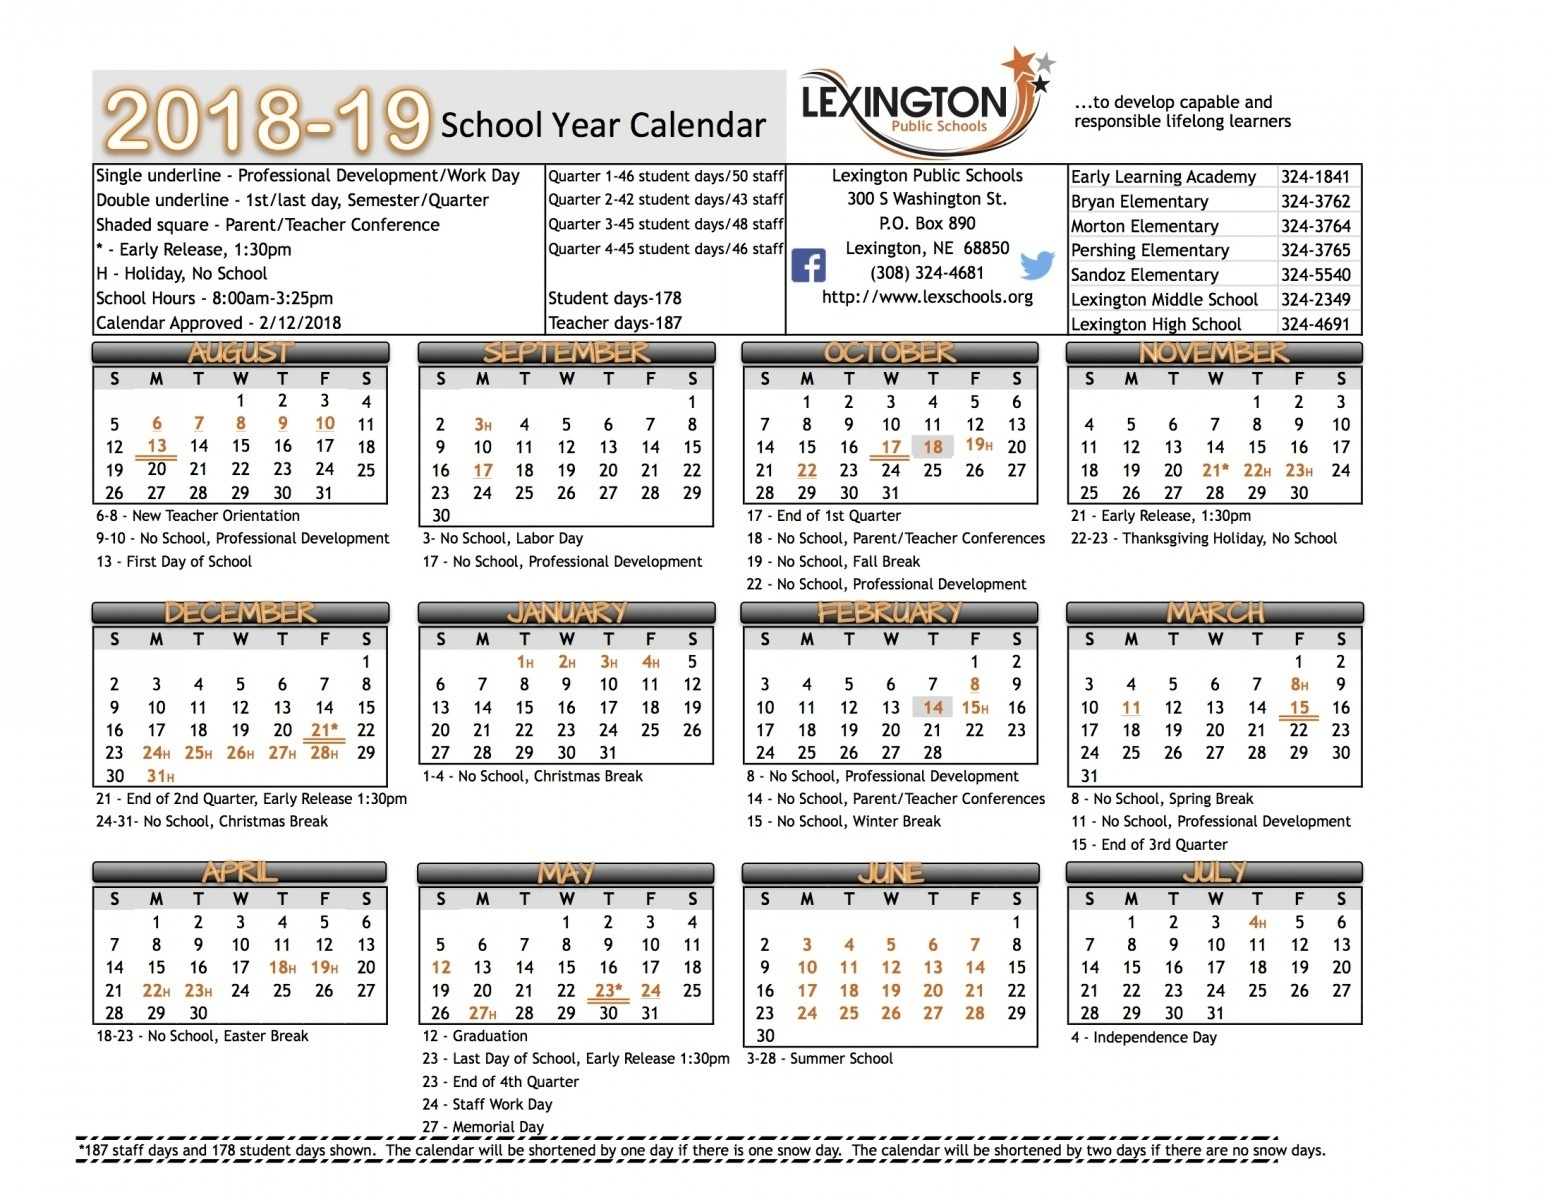 Dashing School Calendar Lexington Ky • Printable Blank Calendar Template_School Calendar Lexington Ky